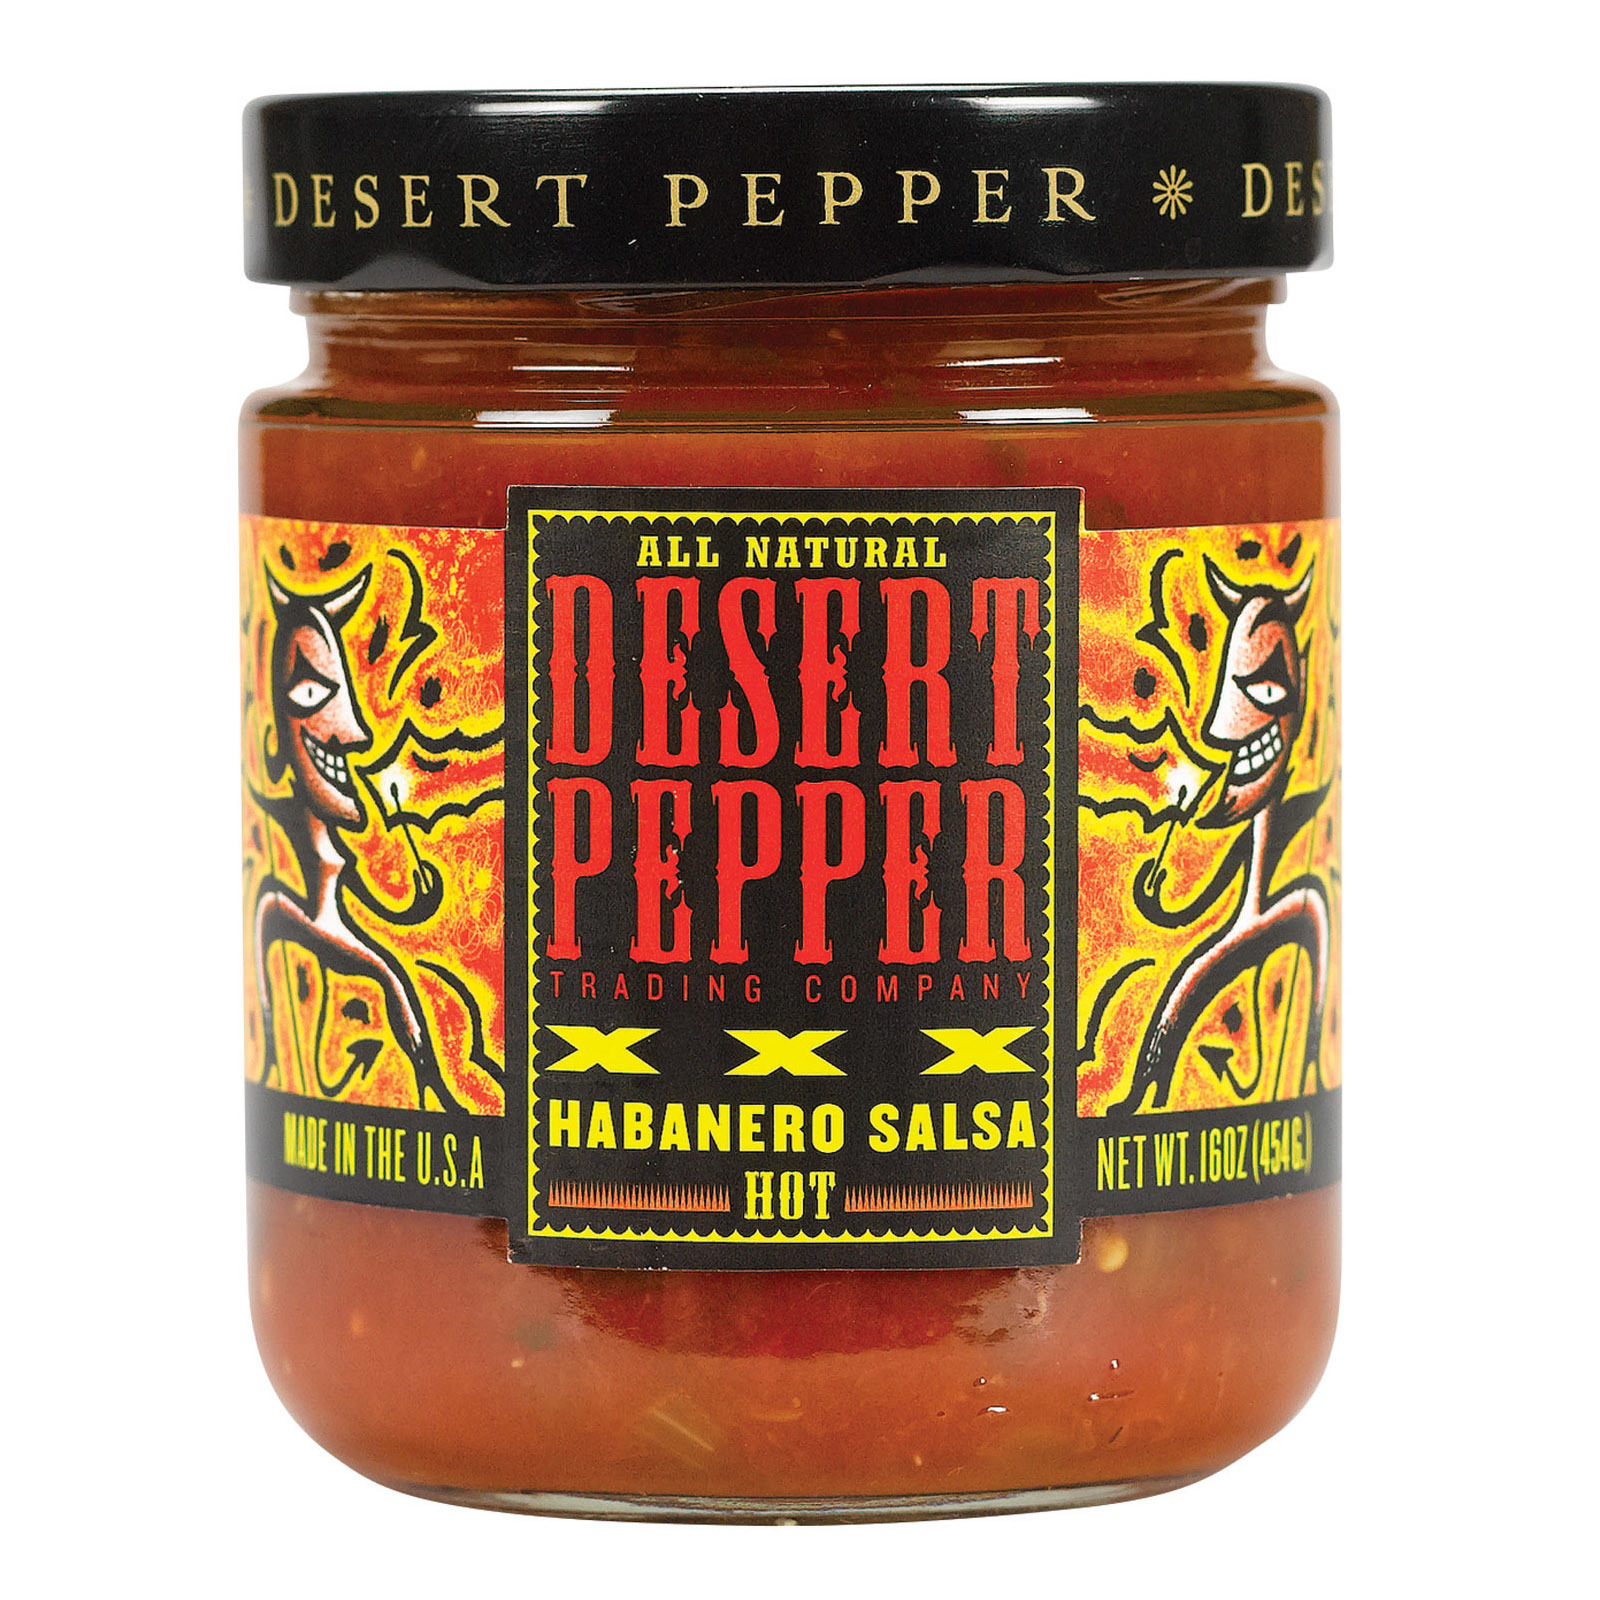 Desert Pepper Trading Xxxtra Hot Habanero Salsa - Case of 6 - 16 oz.